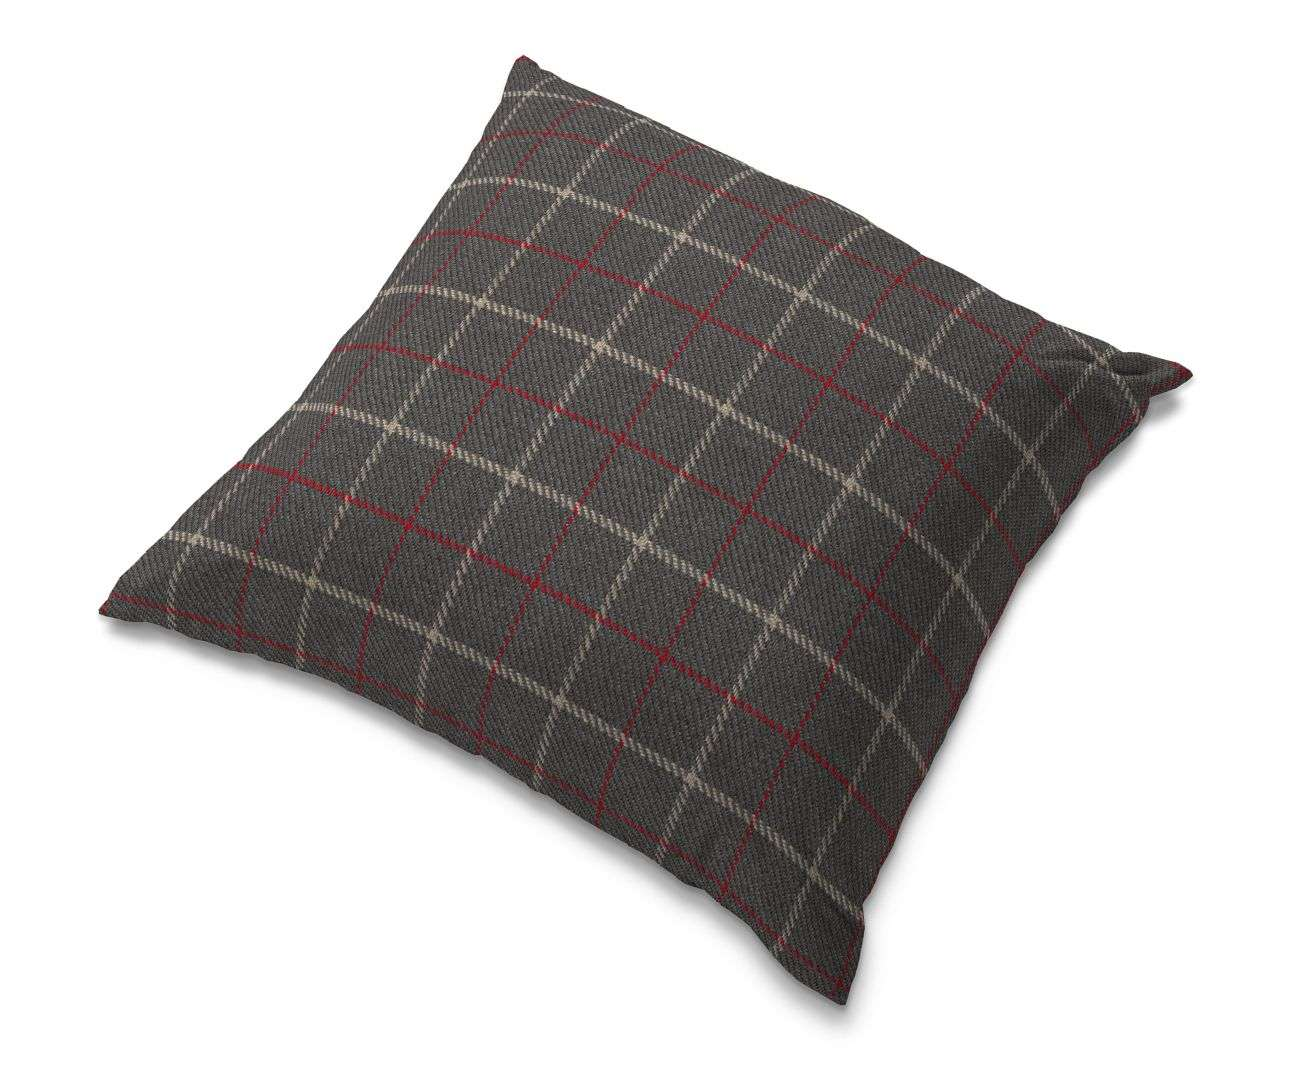 Tomelilla cushion cover 55 x 55 cm (22 x 22 inch) in collection Edinburgh, fabric: 703-15